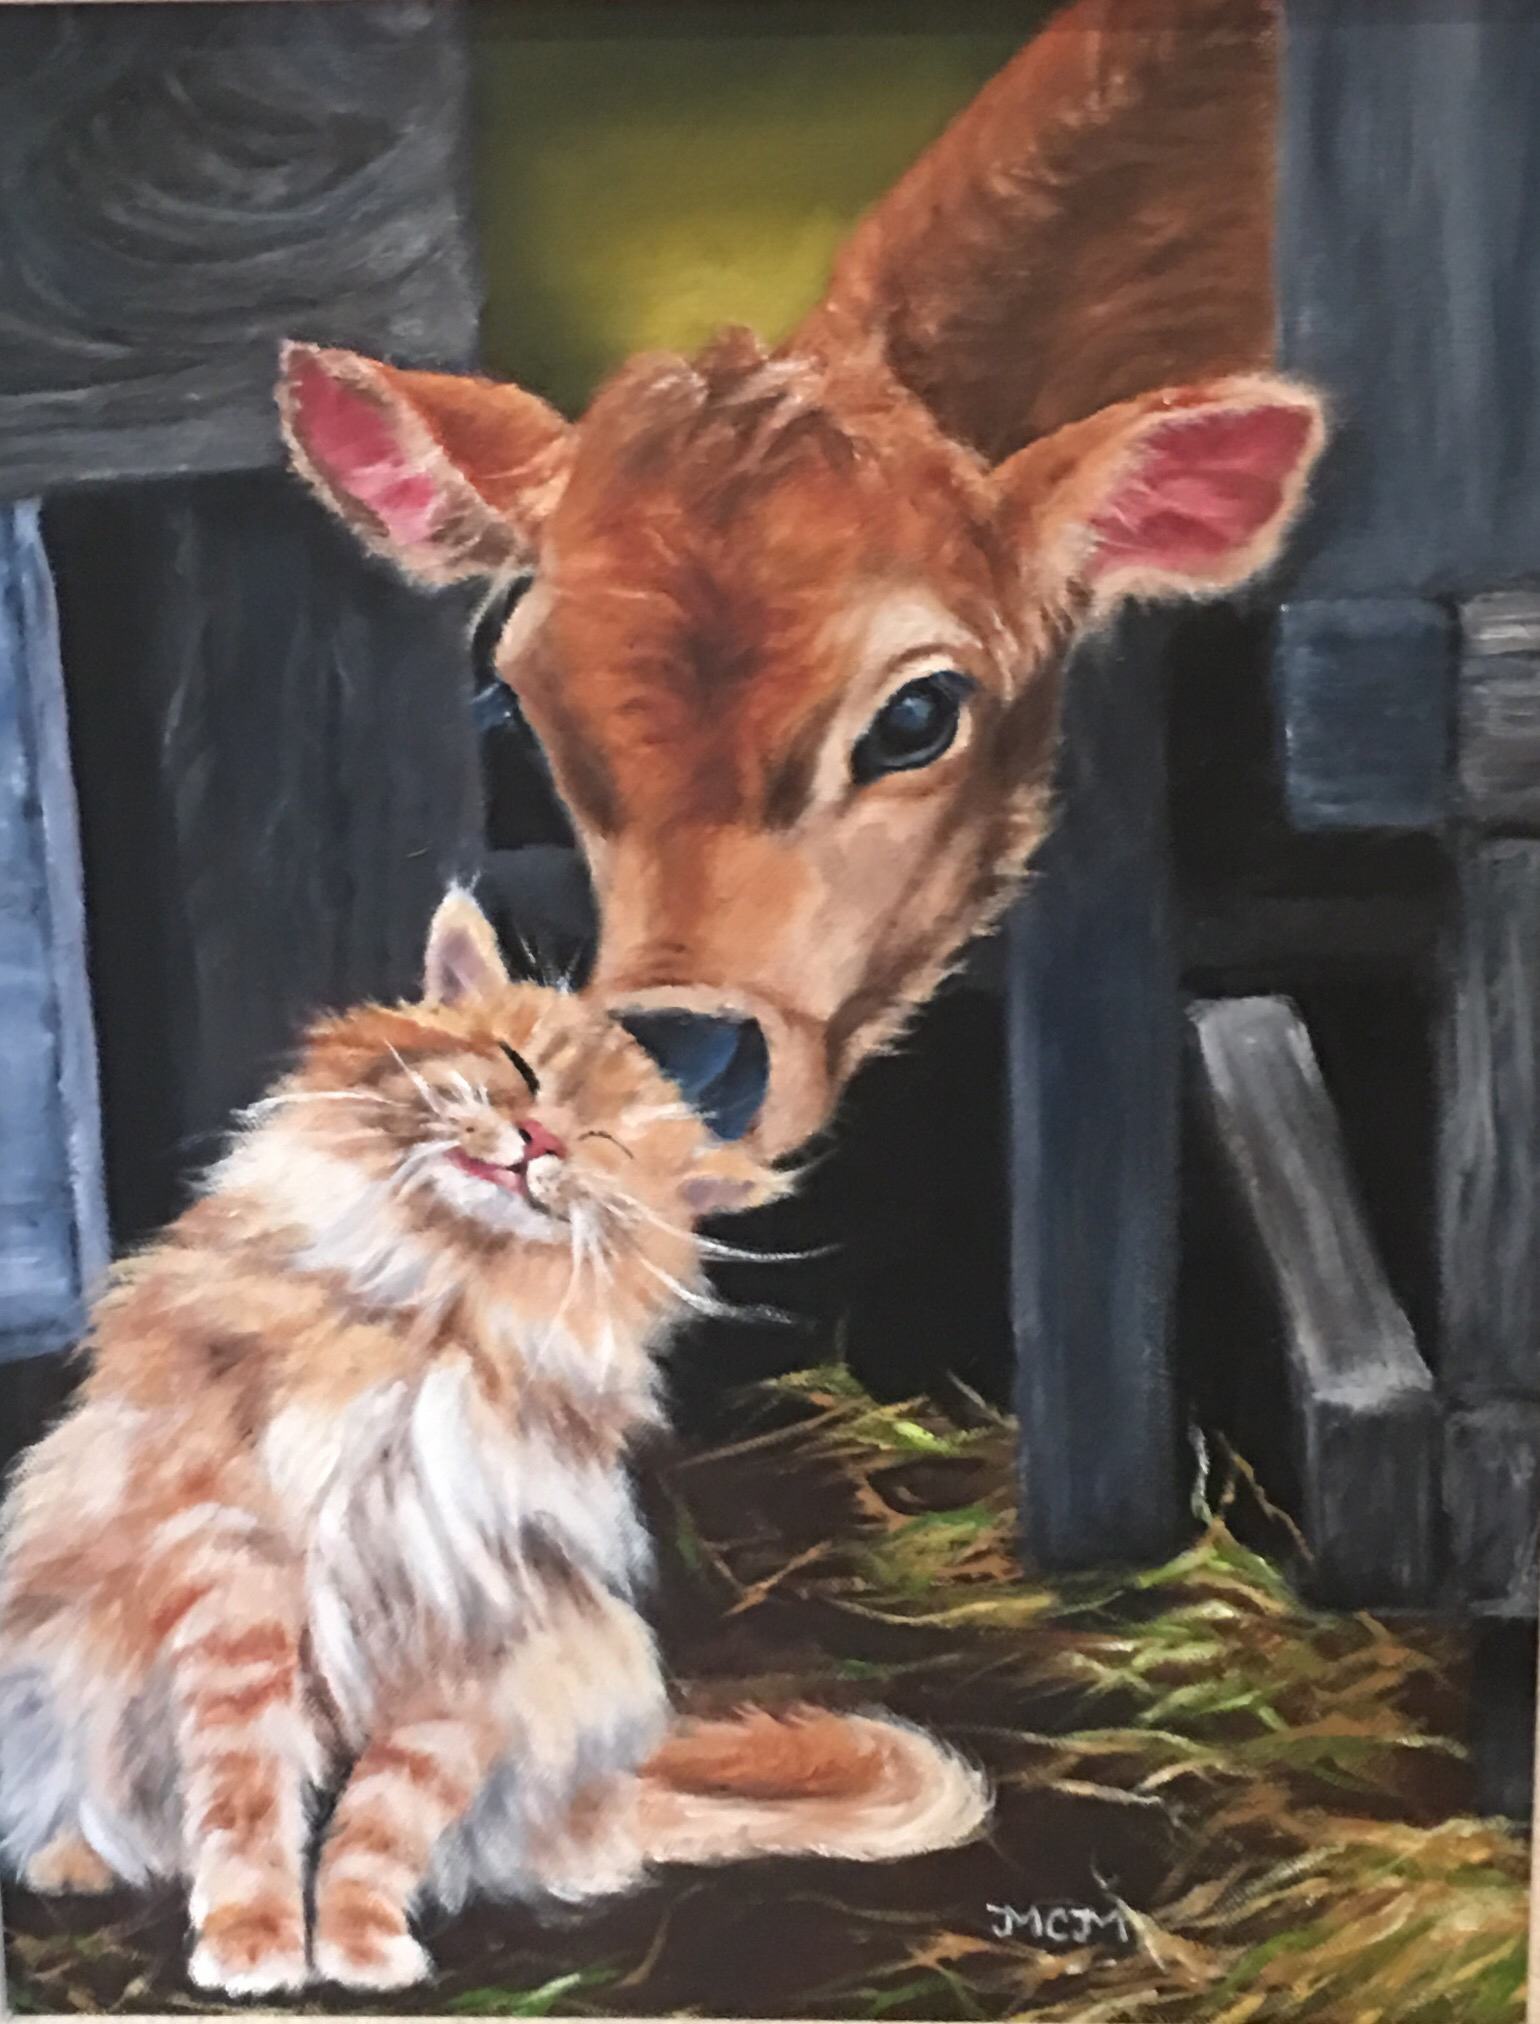 calf and kitty